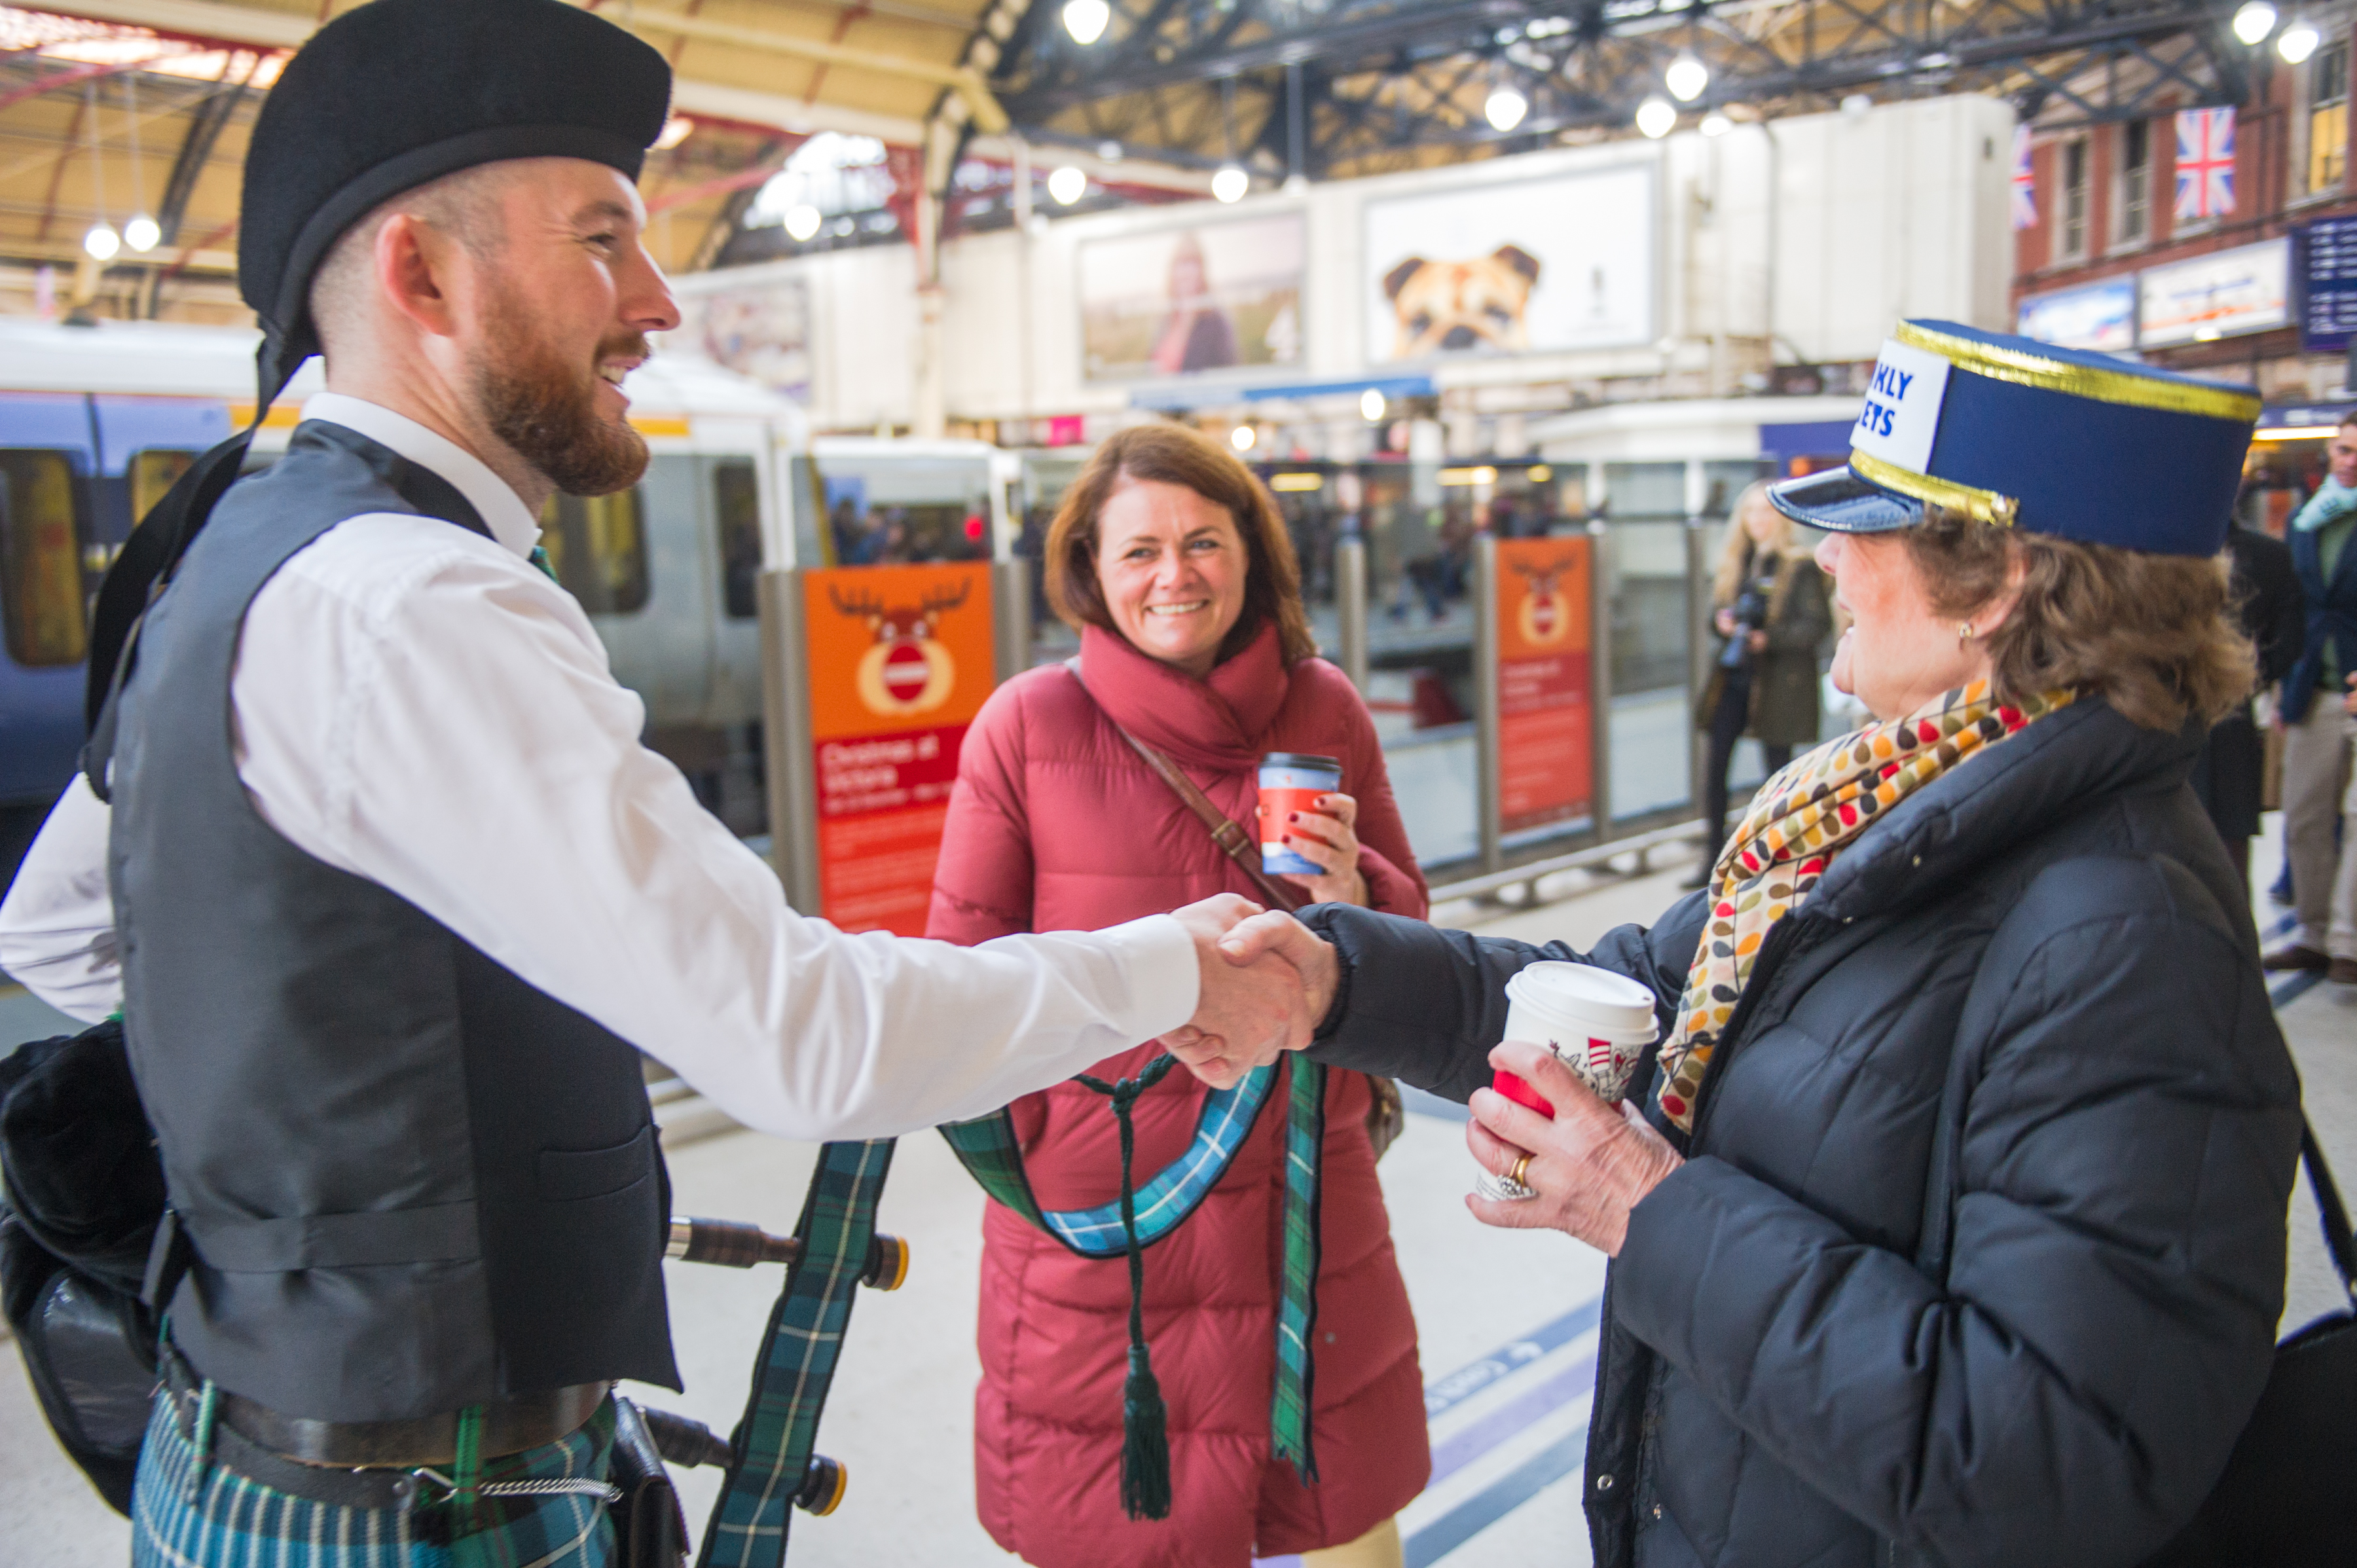 Image of the Essex bagpiper introducing himself for an event on the Orient Express